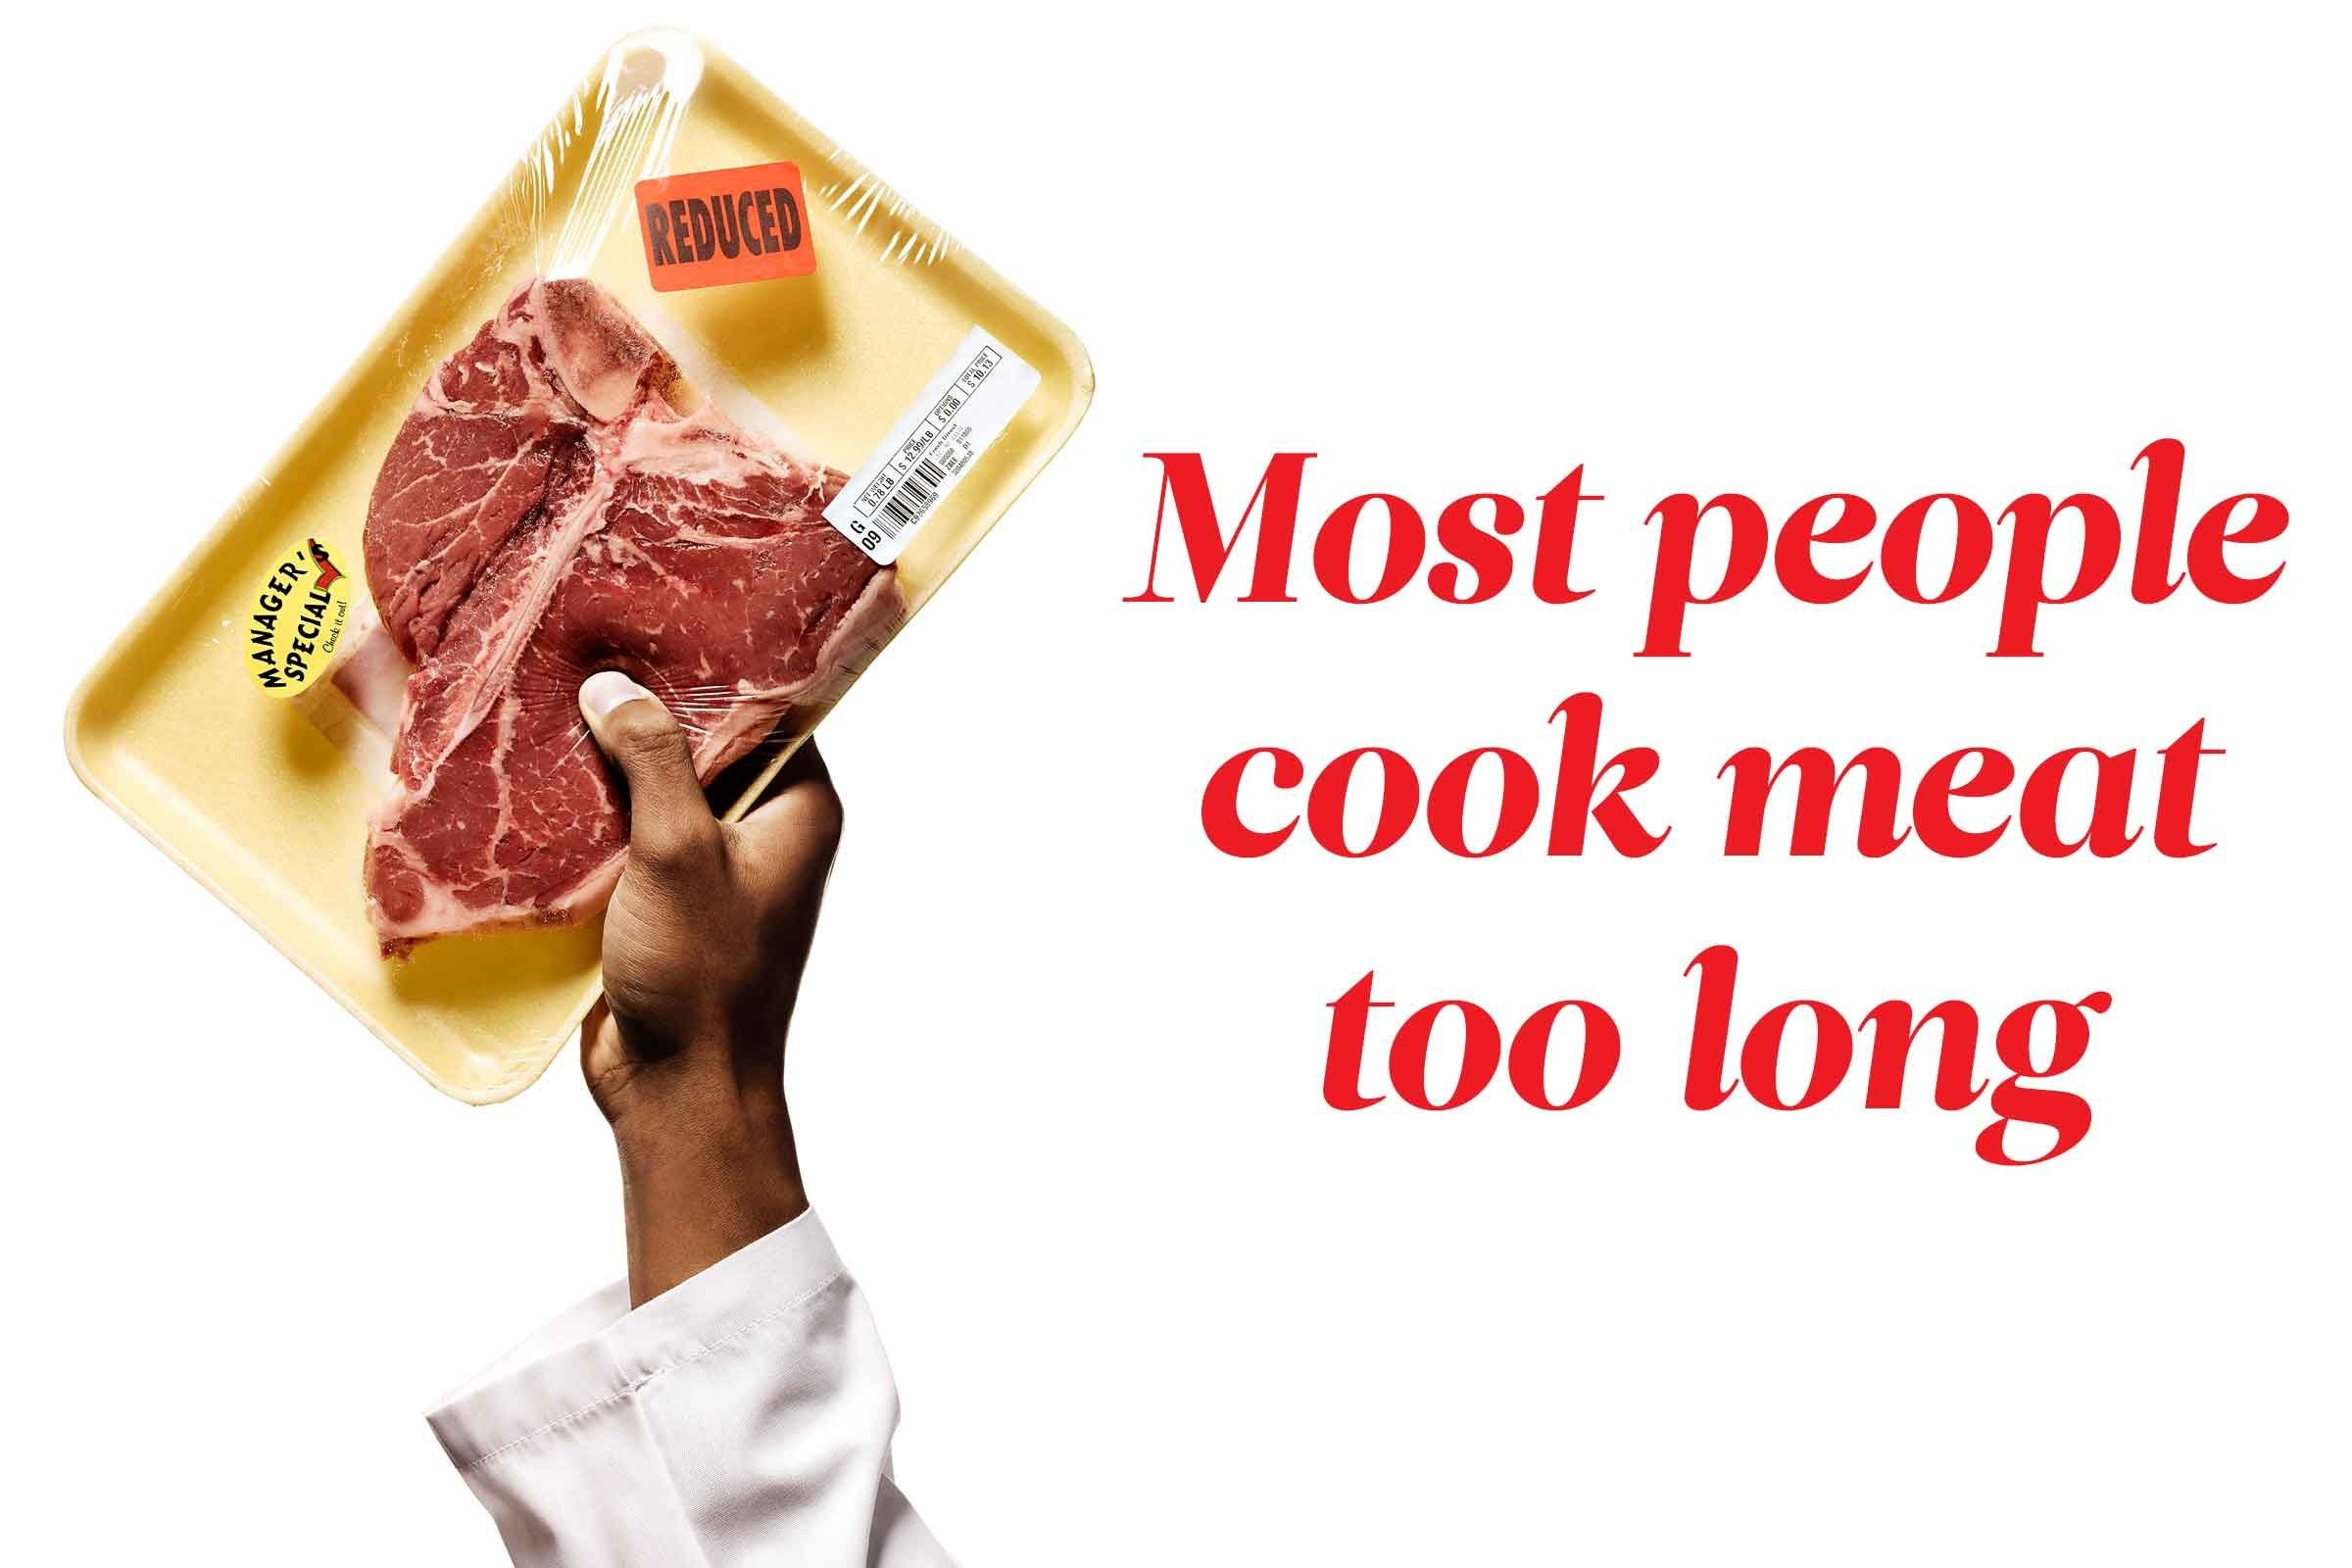 Most people cook their meat too long